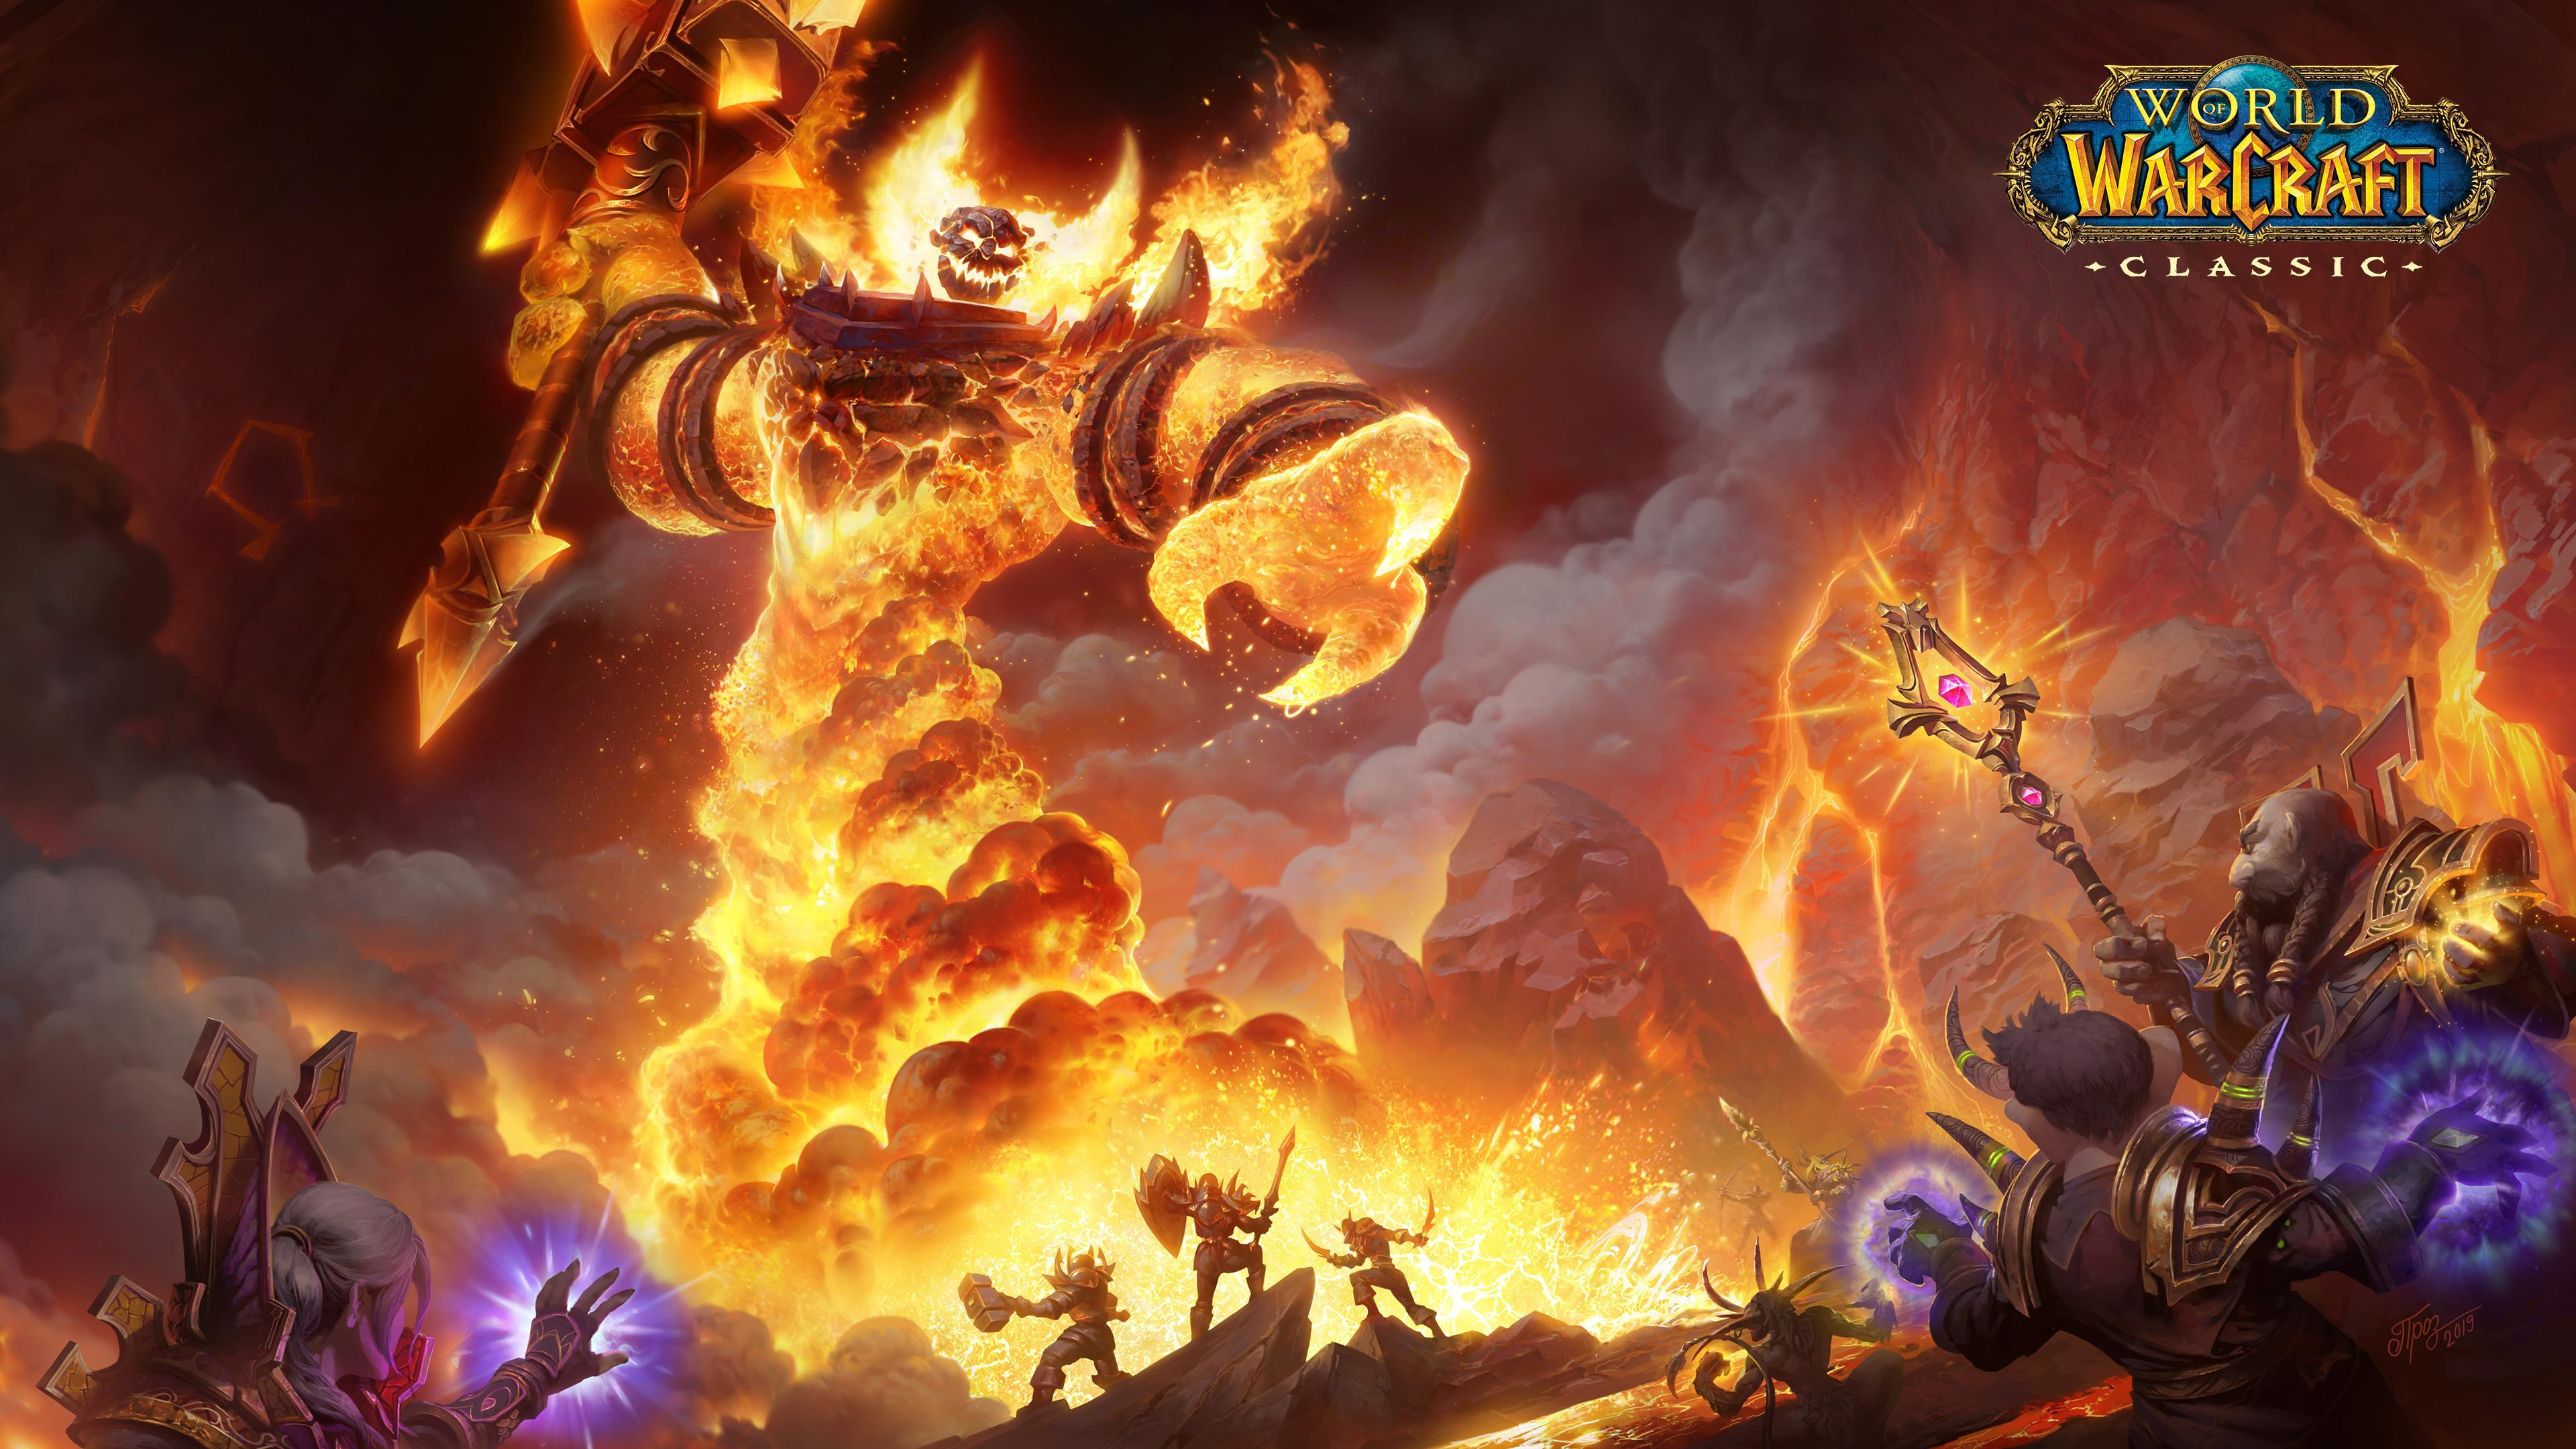 World of Warcraft Classic Wallpapers   Top World of Warcraft 3840x2160